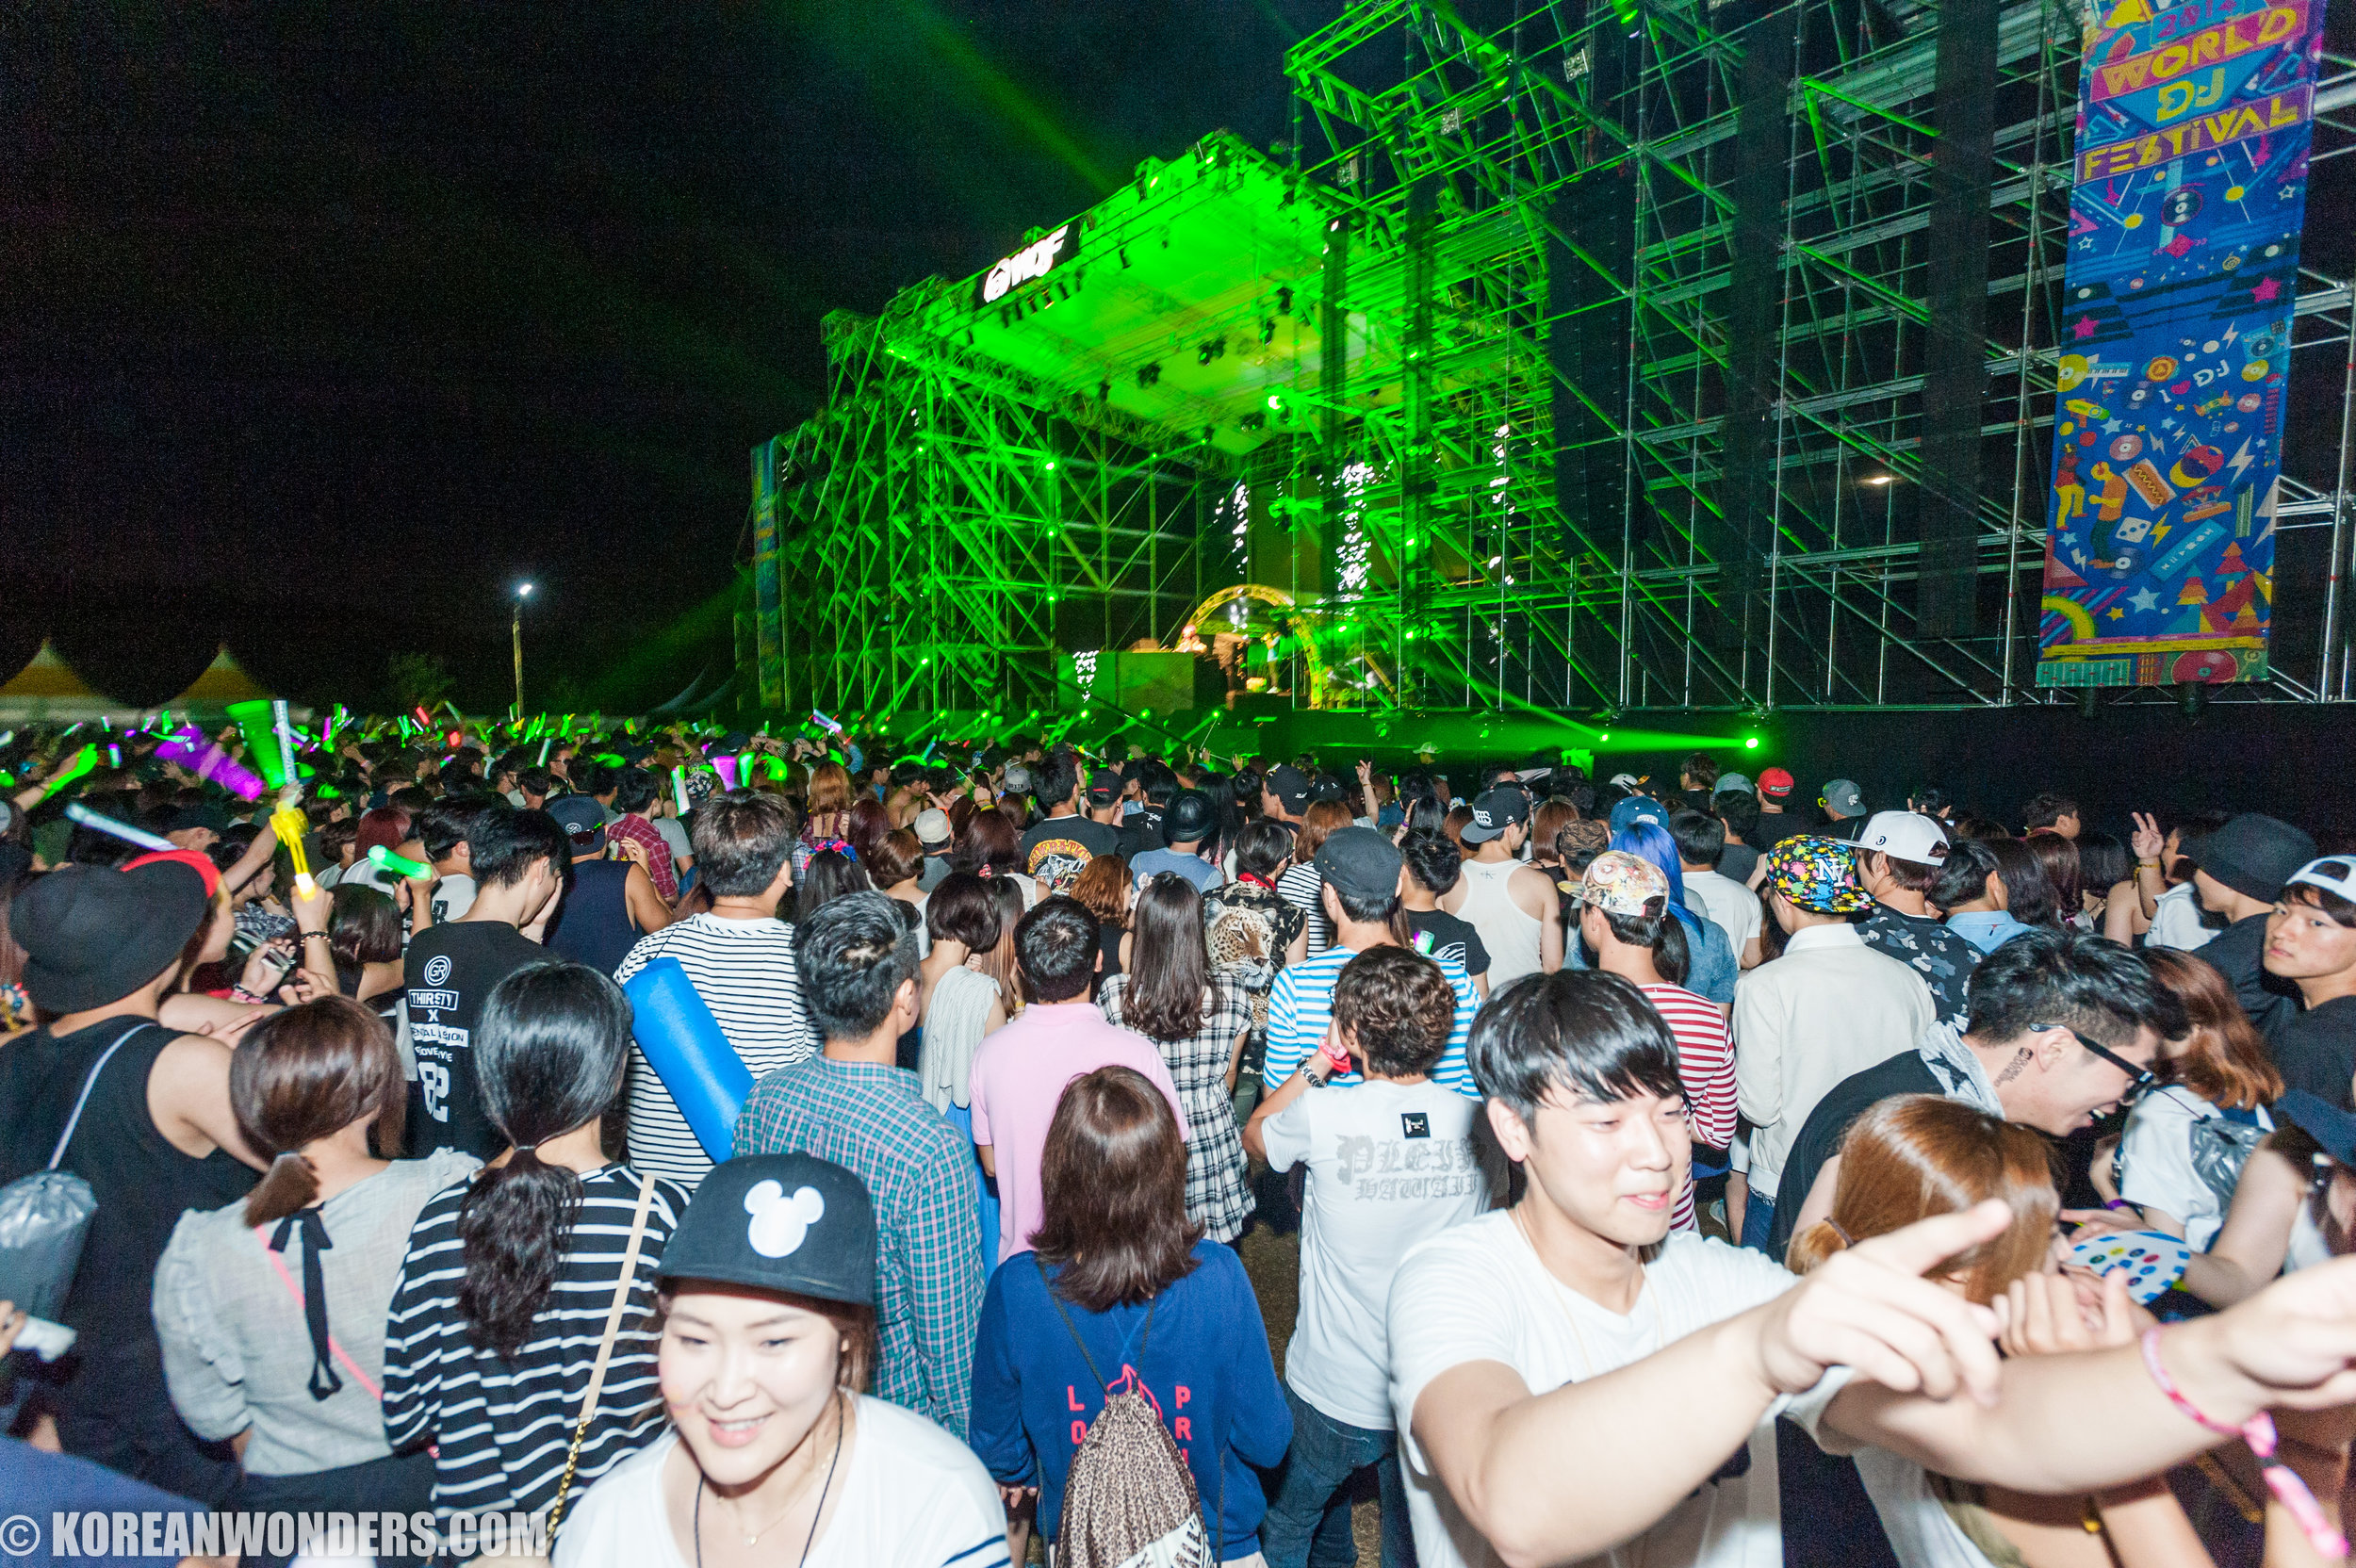 World DJ Festival 2014 - Yangpyeong, Korea